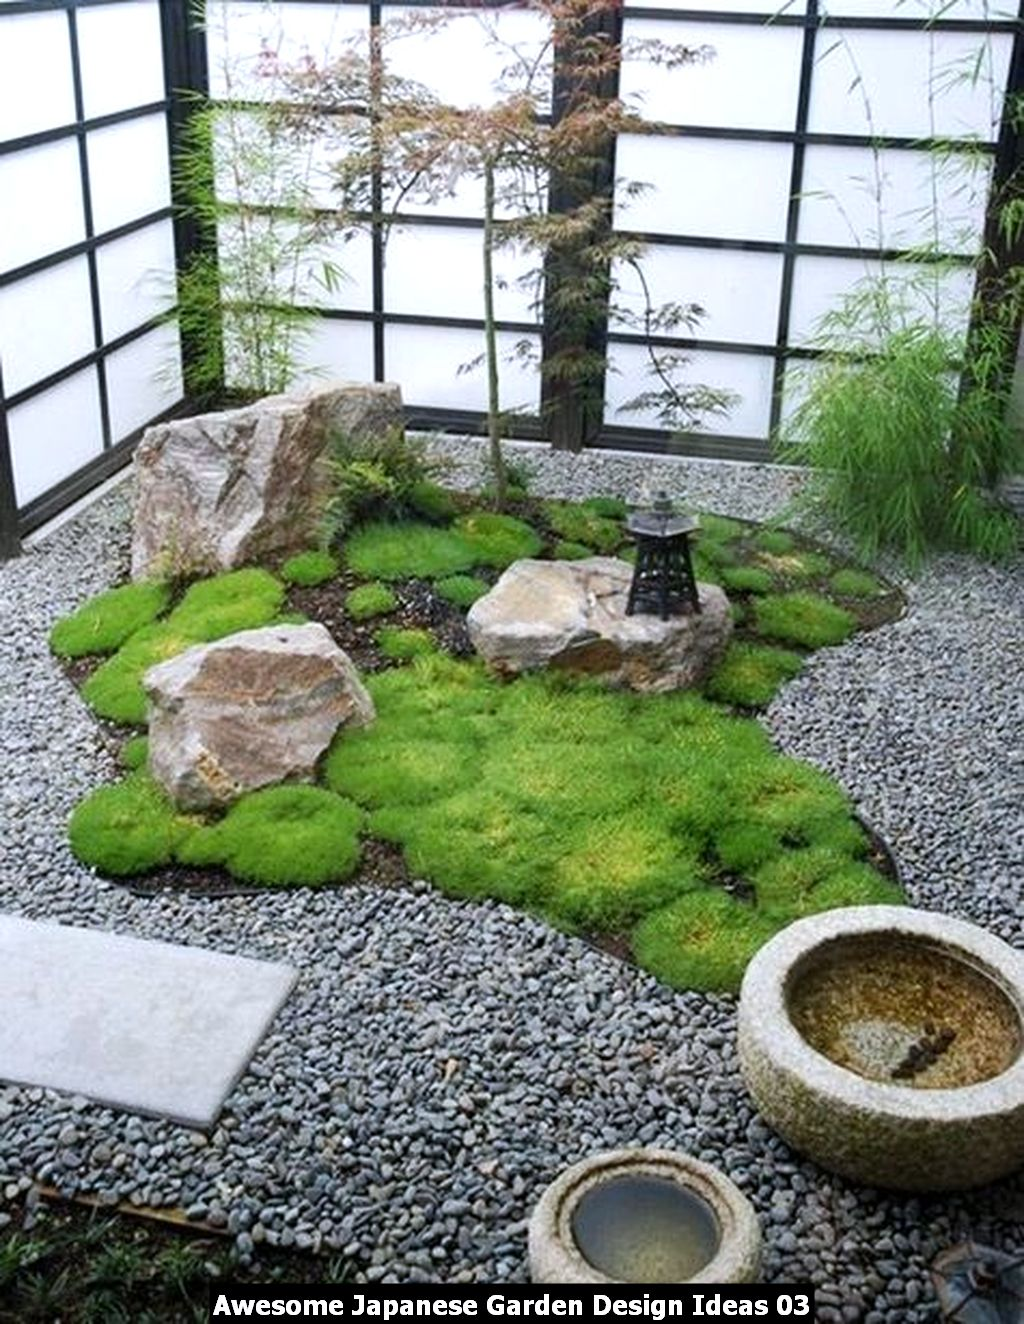 Awesome Japanese Garden Design Ideas 03